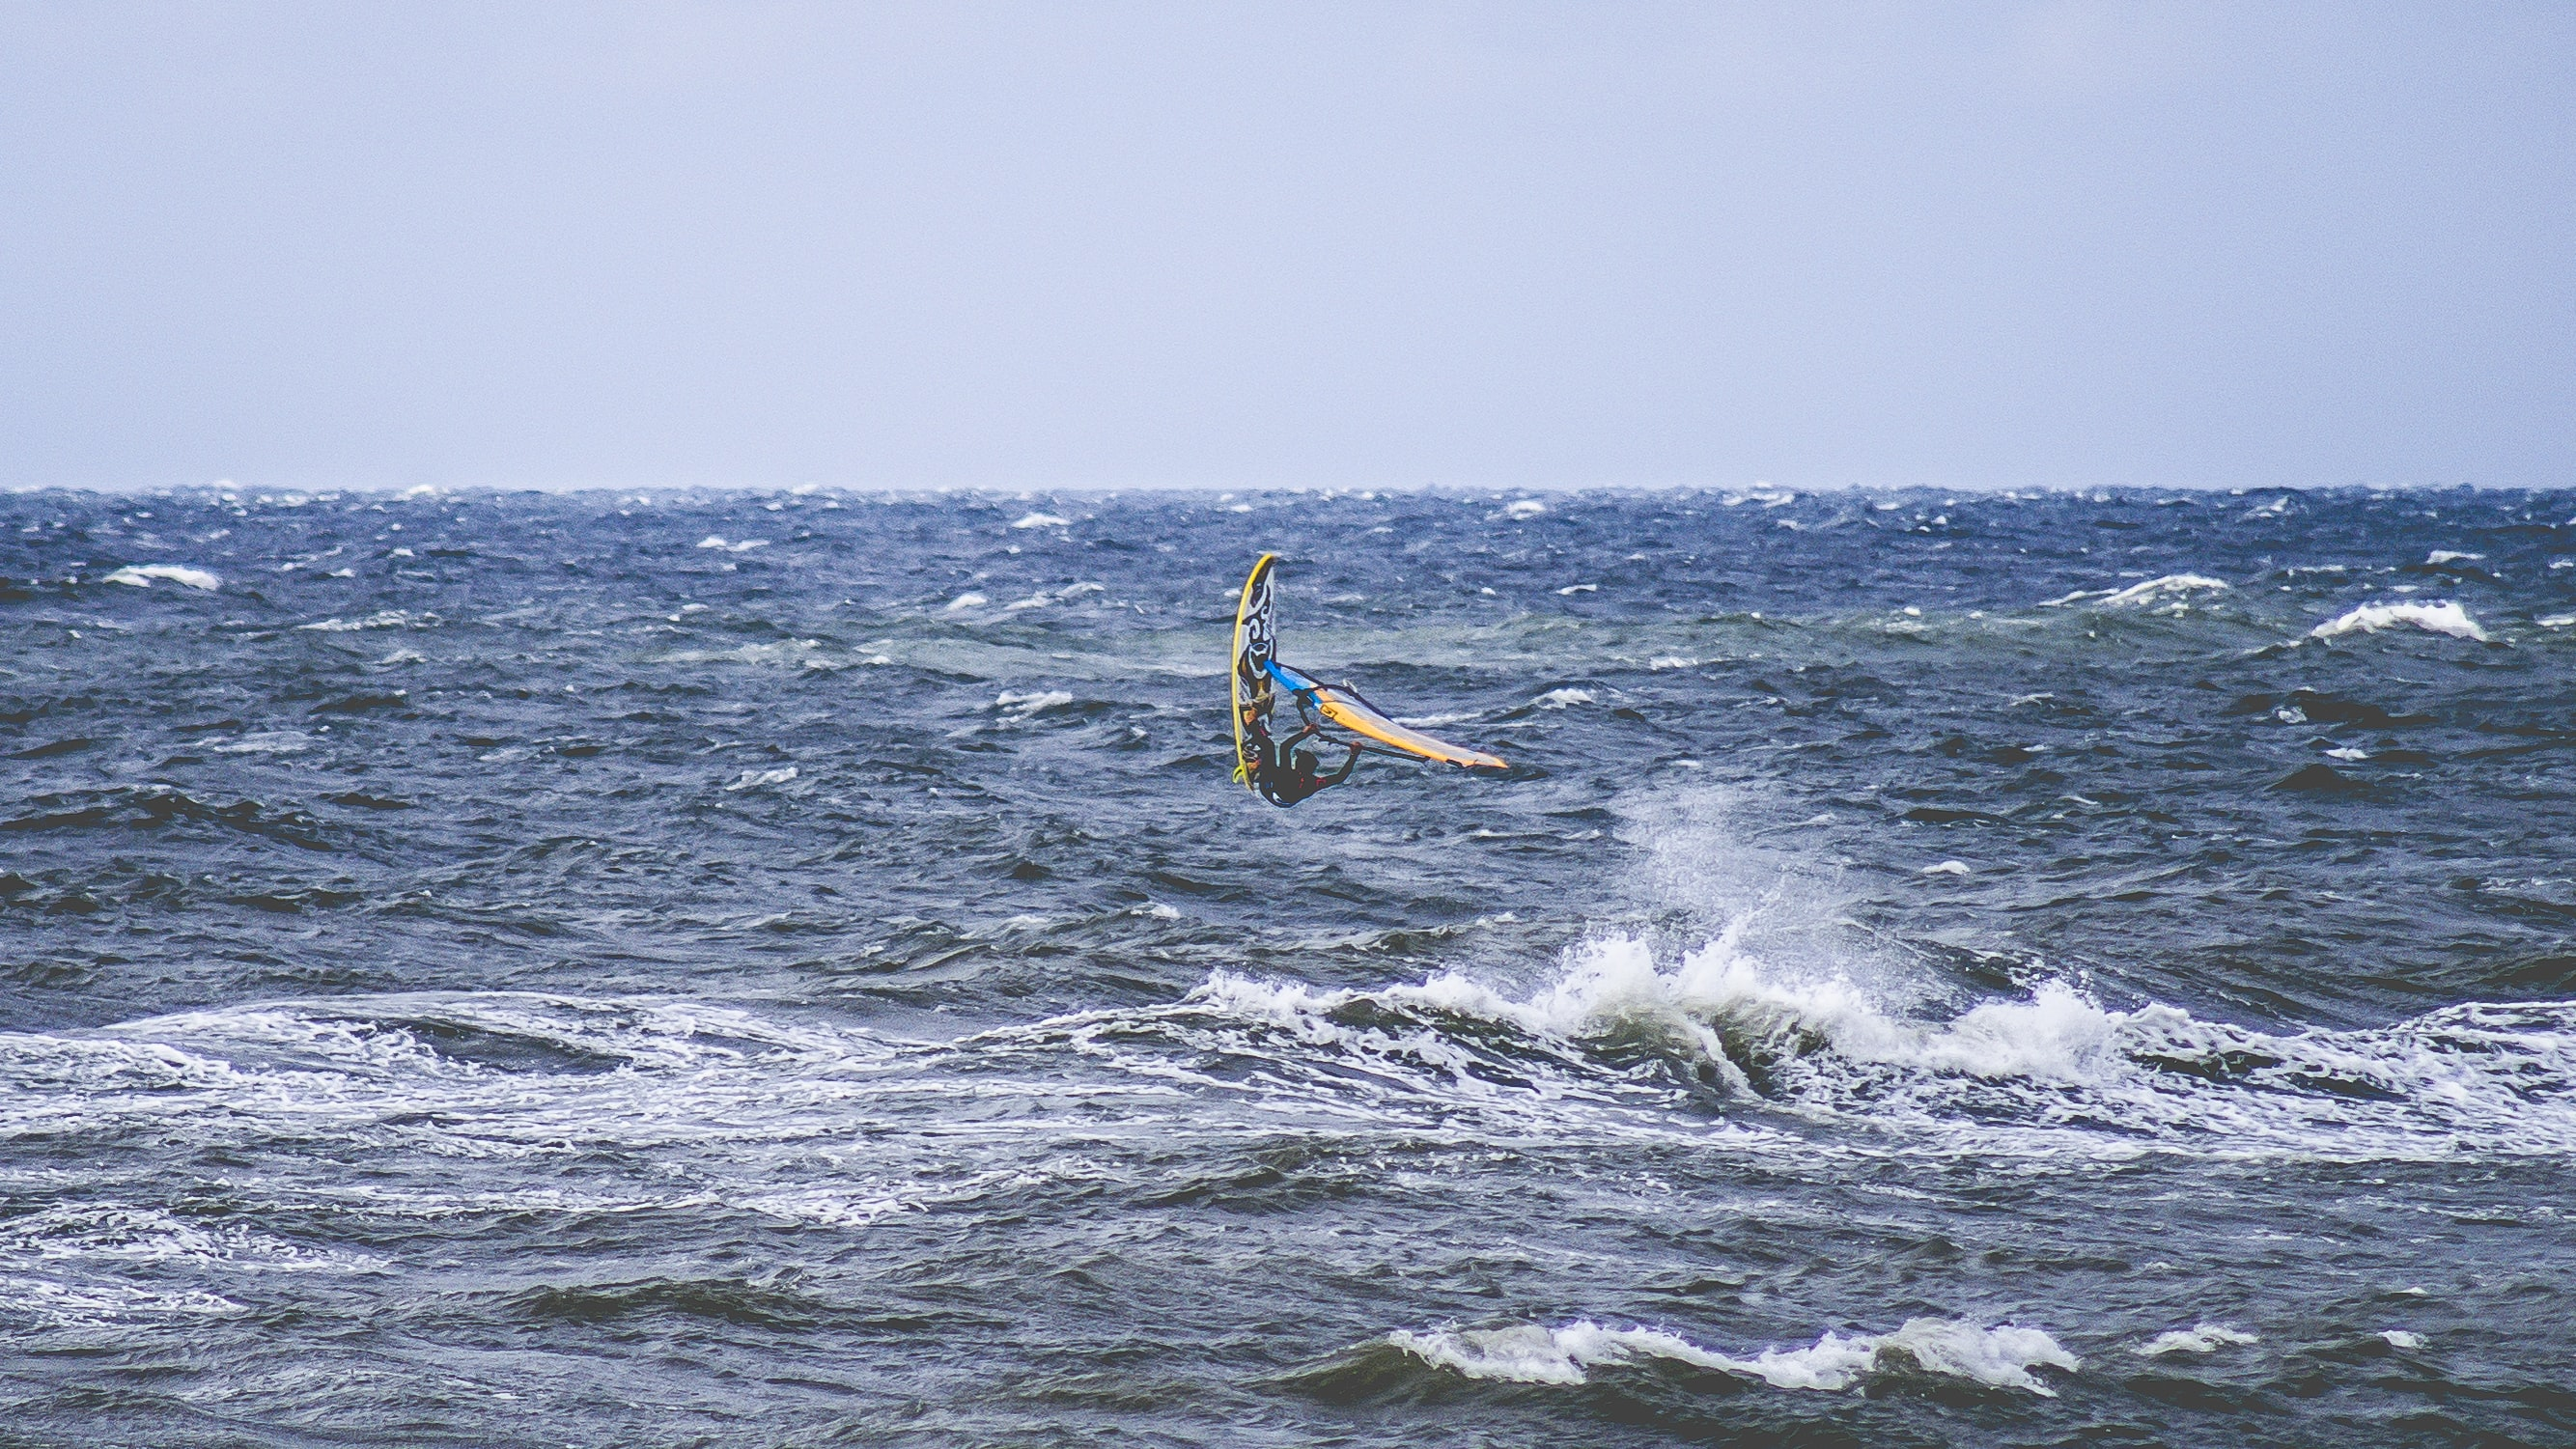 man surfing above body of water